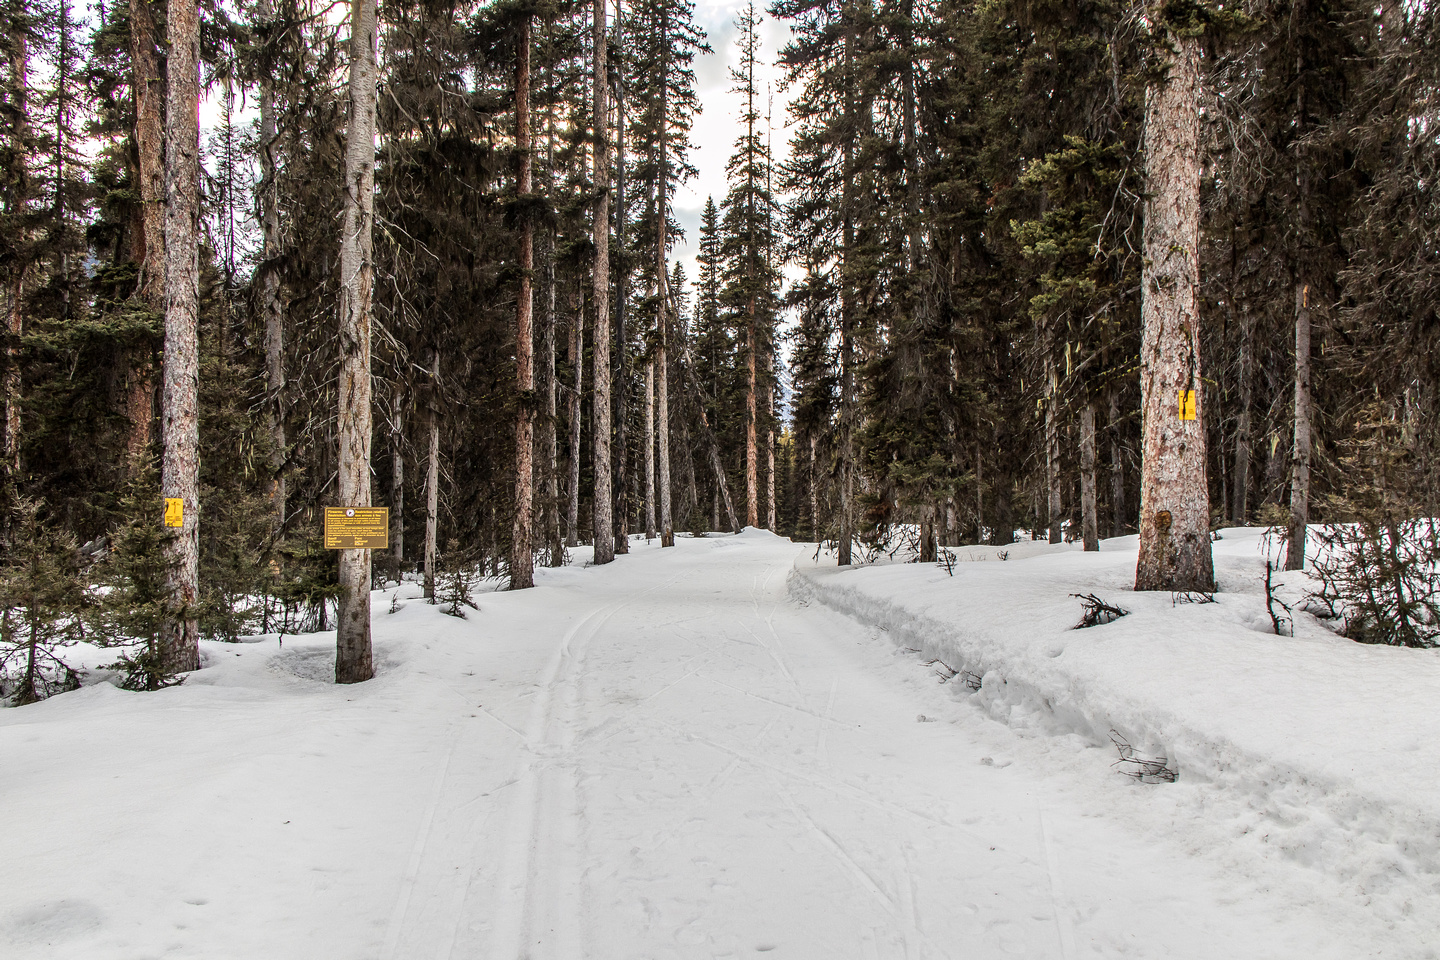 The wide, groomed trail is about the end after reaching the Banff National Park boundary.